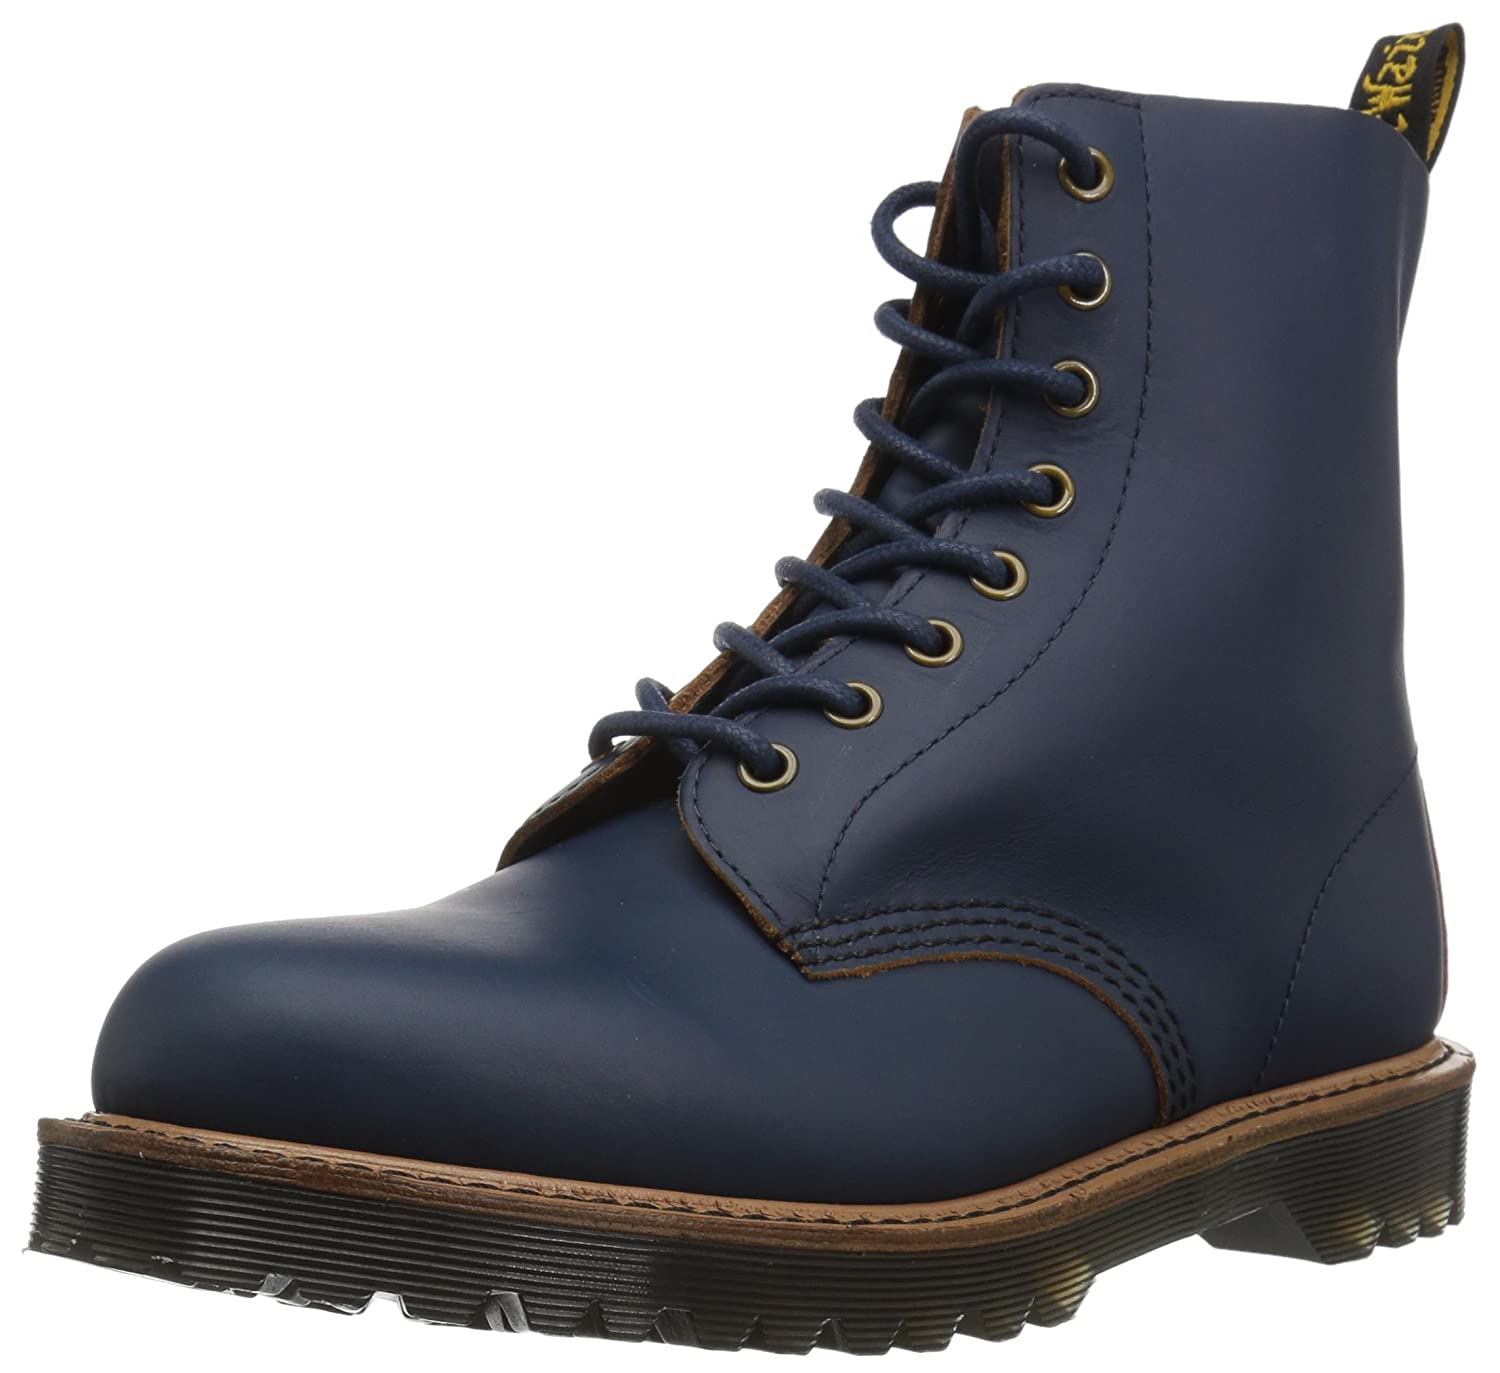 Dr. Martens Women's Pascal II Fashion Boot B01MY3D9E5 3 Medium UK (5 US)|Indigo Montelupo